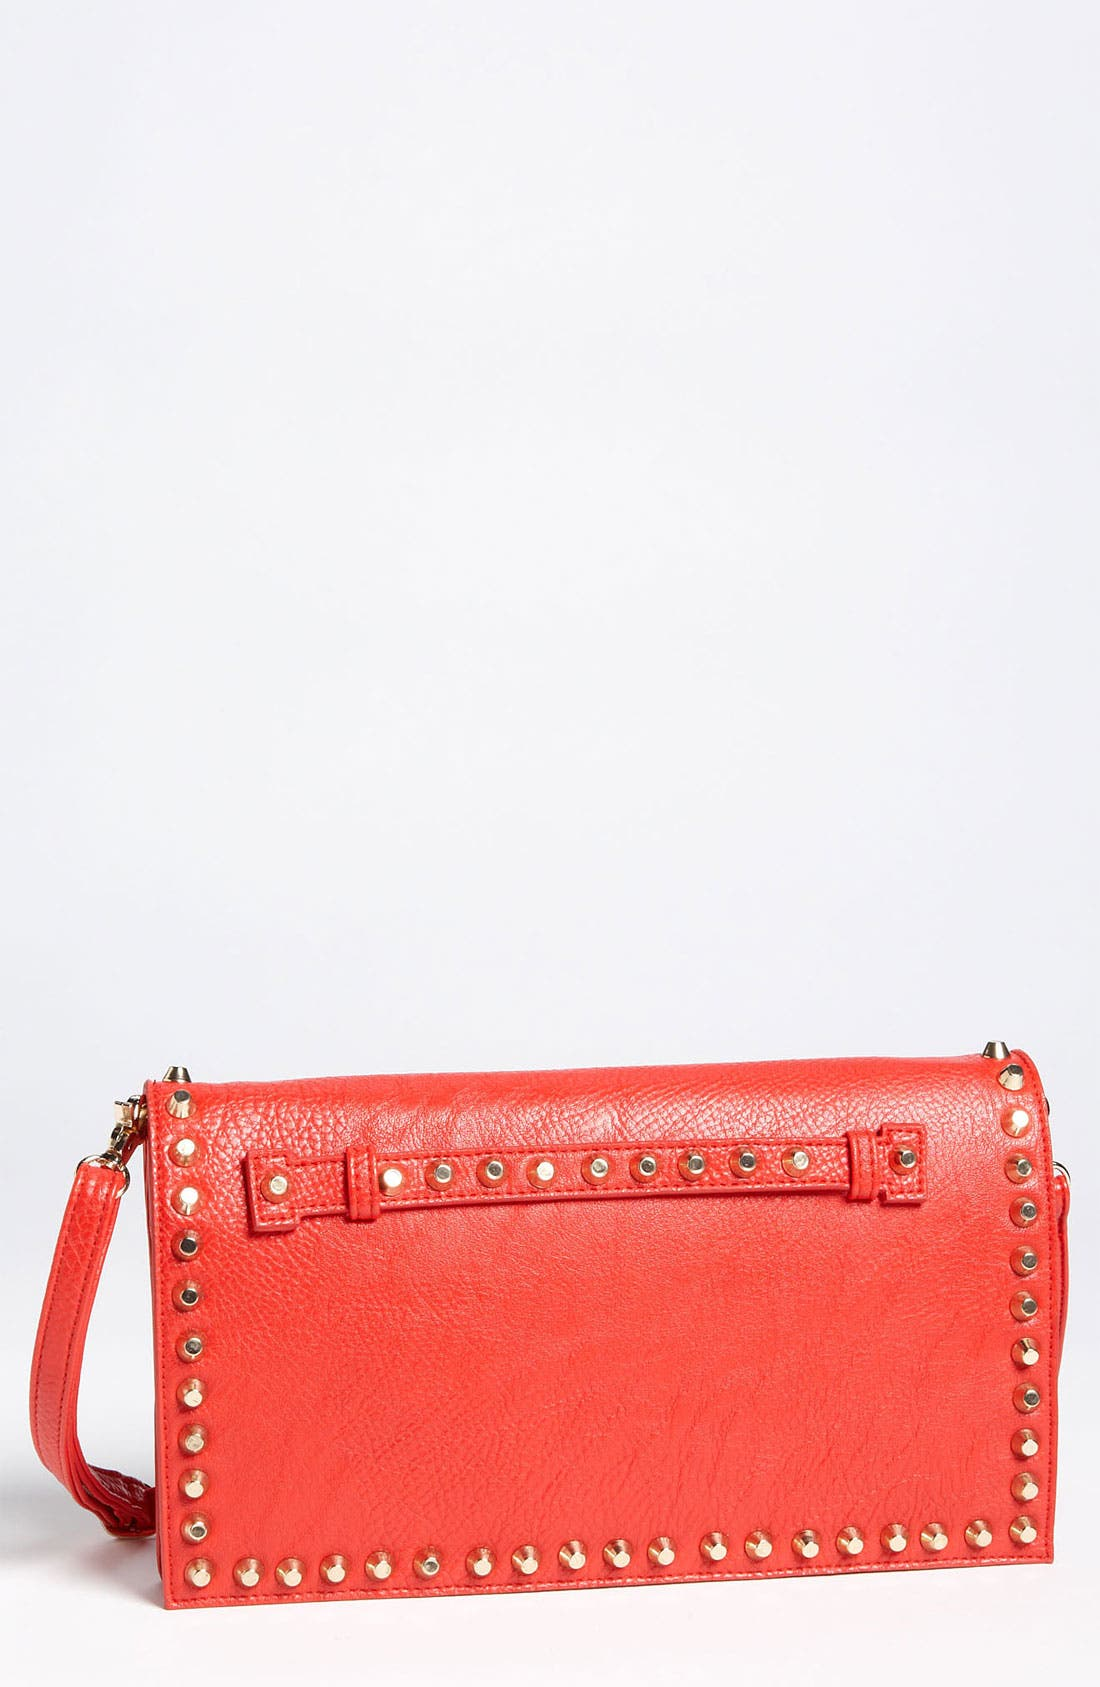 Alternate Image 1 Selected - Street Level Studded Convertible Clutch